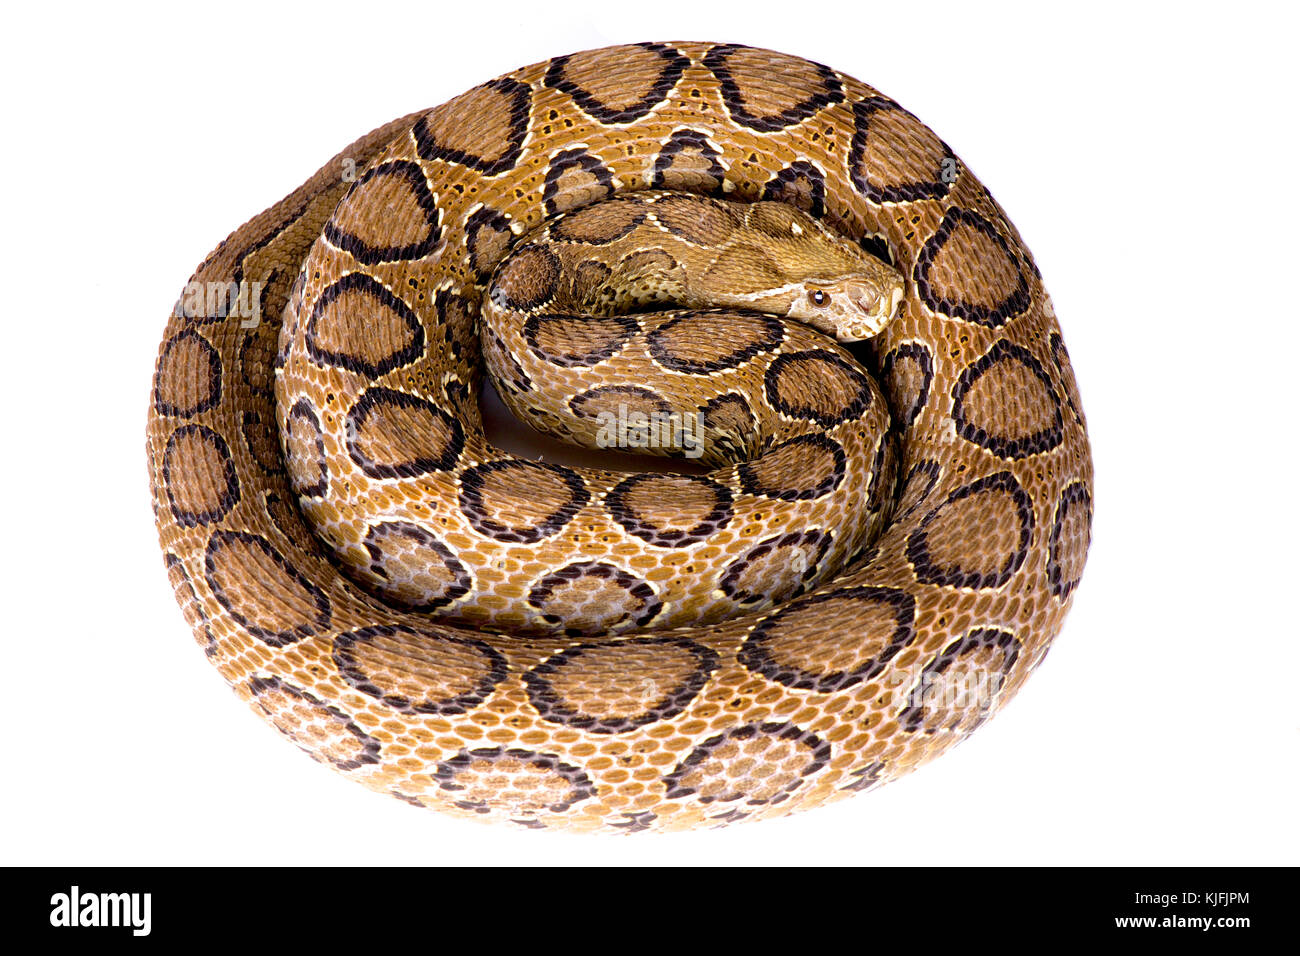 Russell's viper, Daboia russelii - Stock Image